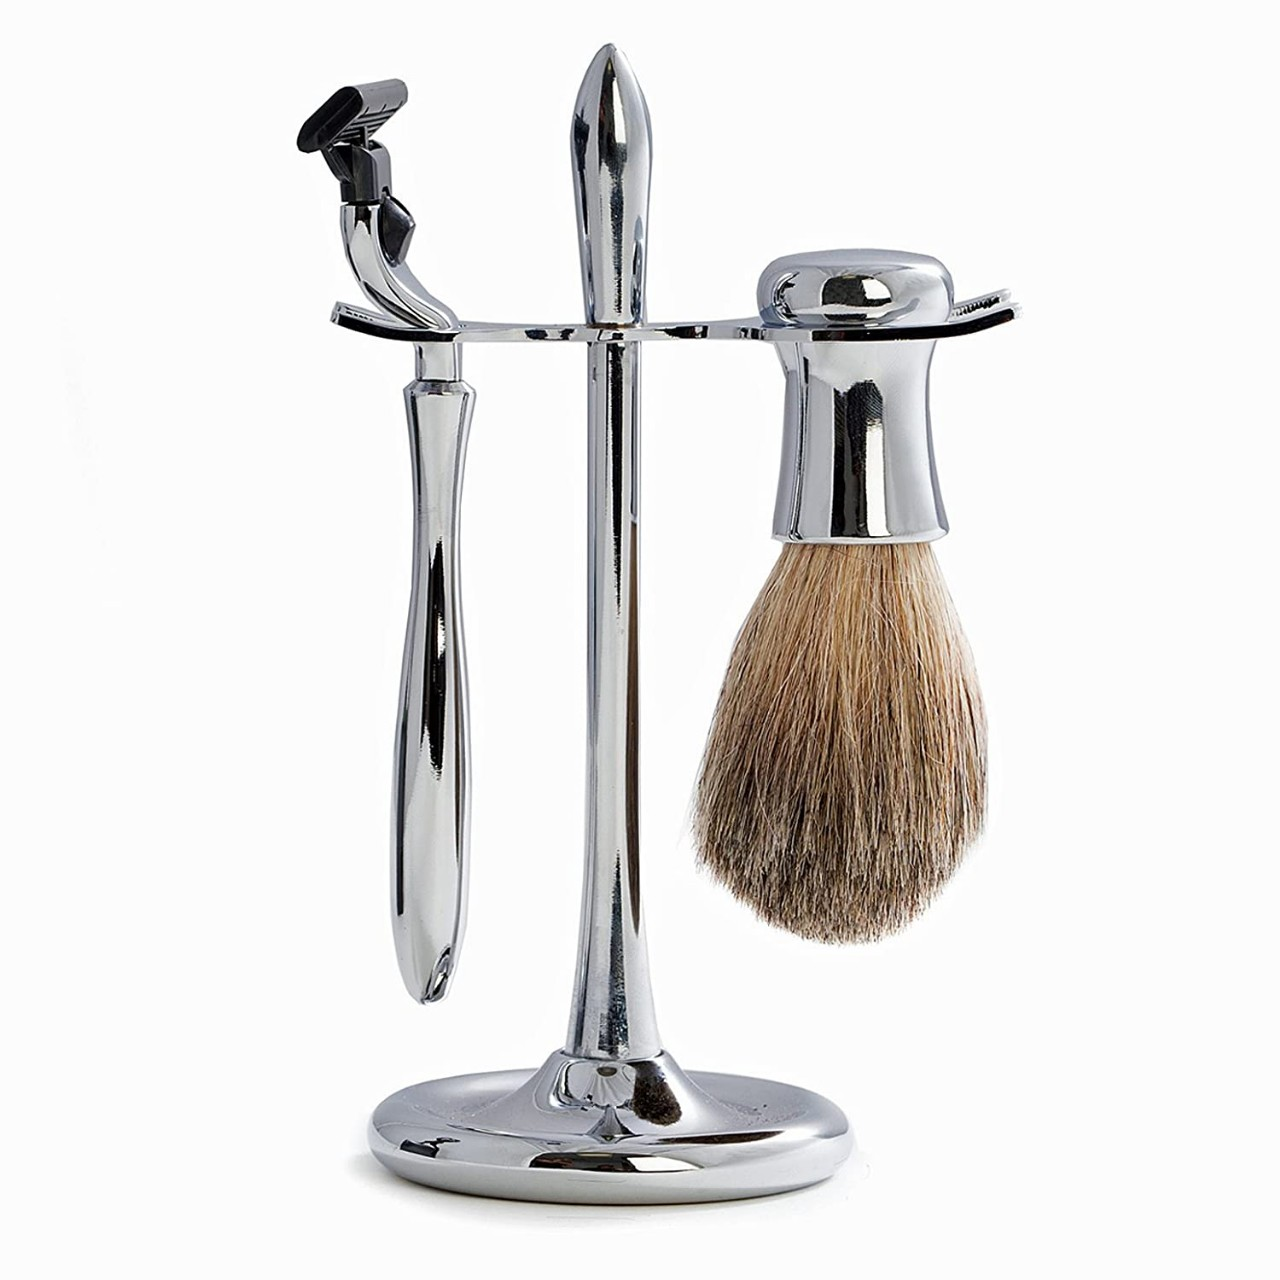 KensingtonRow Home Collection Mens Shaving and Grooming Sets - Kings Lane Shaving Set : Mach 3 Razor